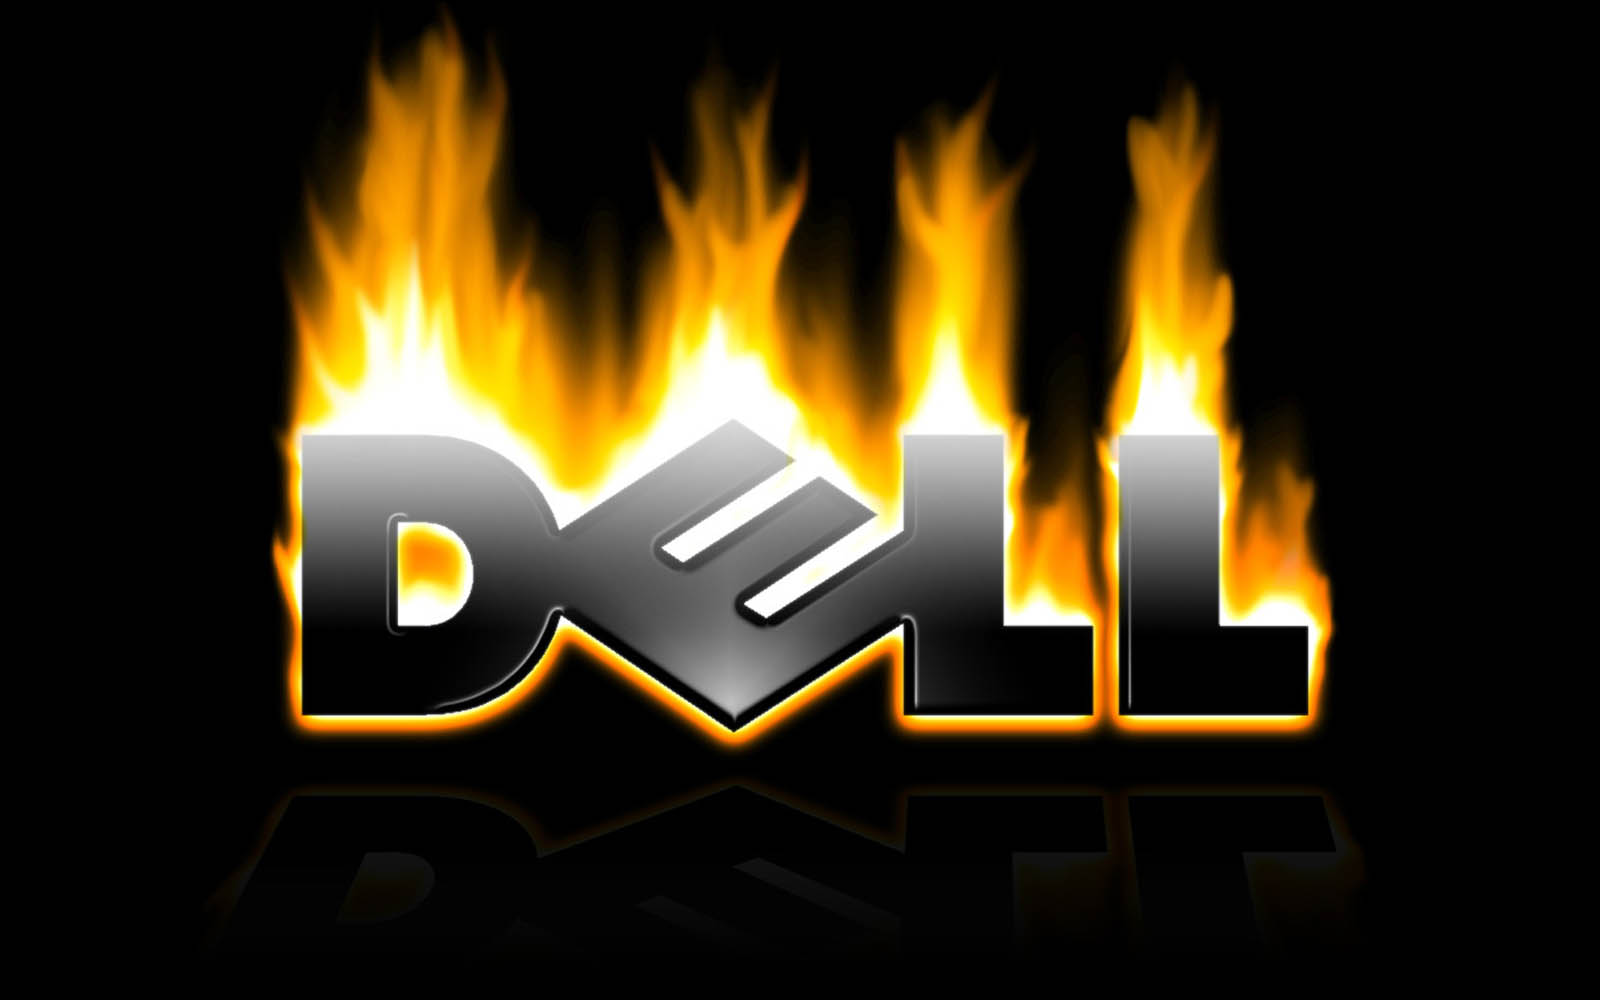 dell computers wallpaper logo - photo #23